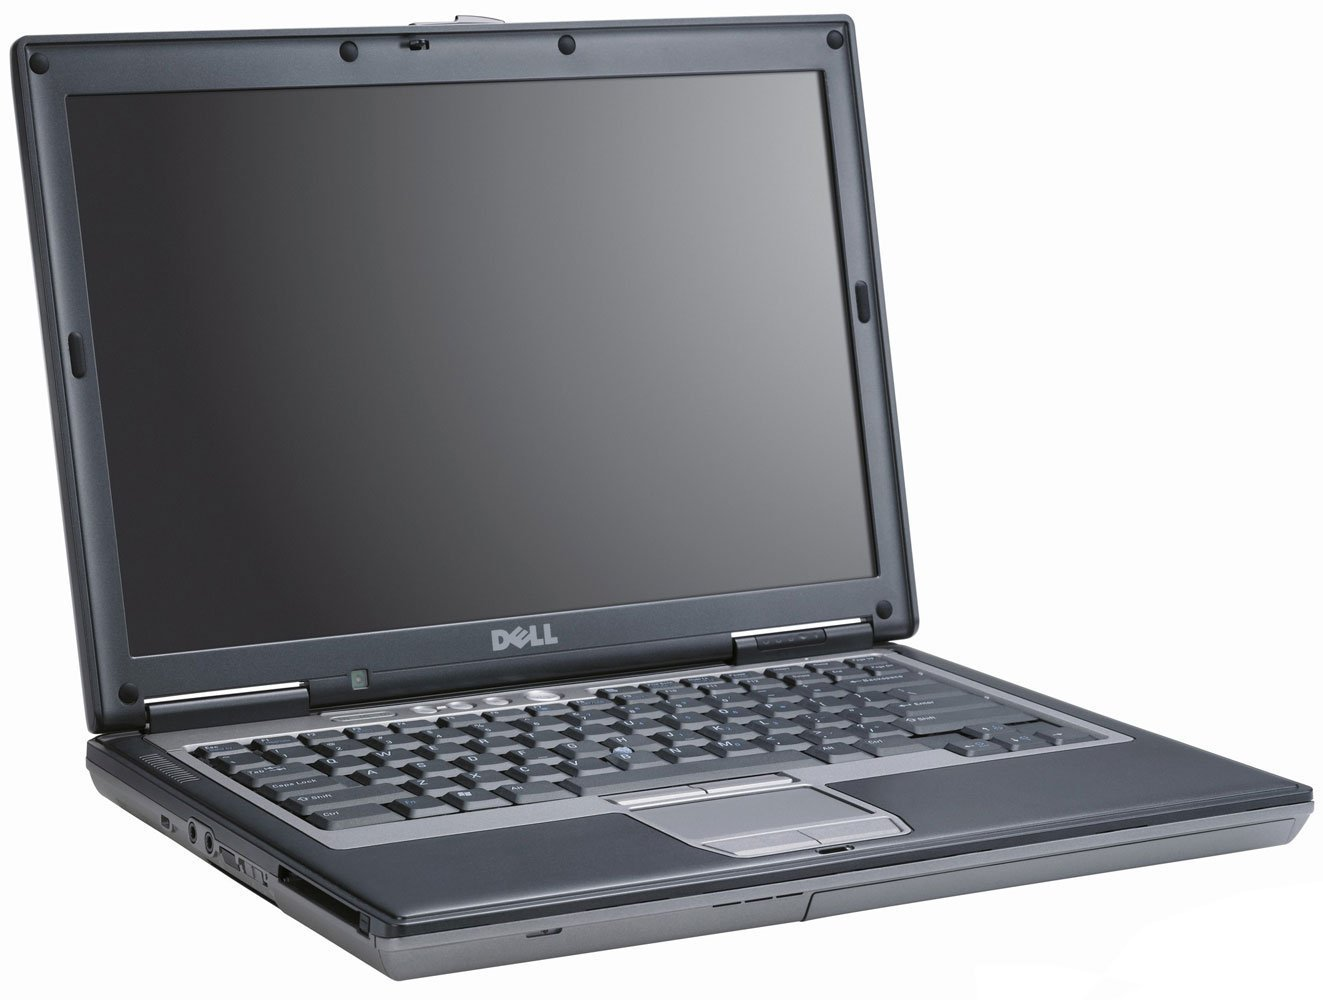 Amazon.com: Dell Latitude D630 Laptop - Core 2 Duo 2.0GHz - 2GB DDR2 -  120GB - DVD+CDRW - Windows 10 Home - (Certified Refurbished): Computers &  Accessories